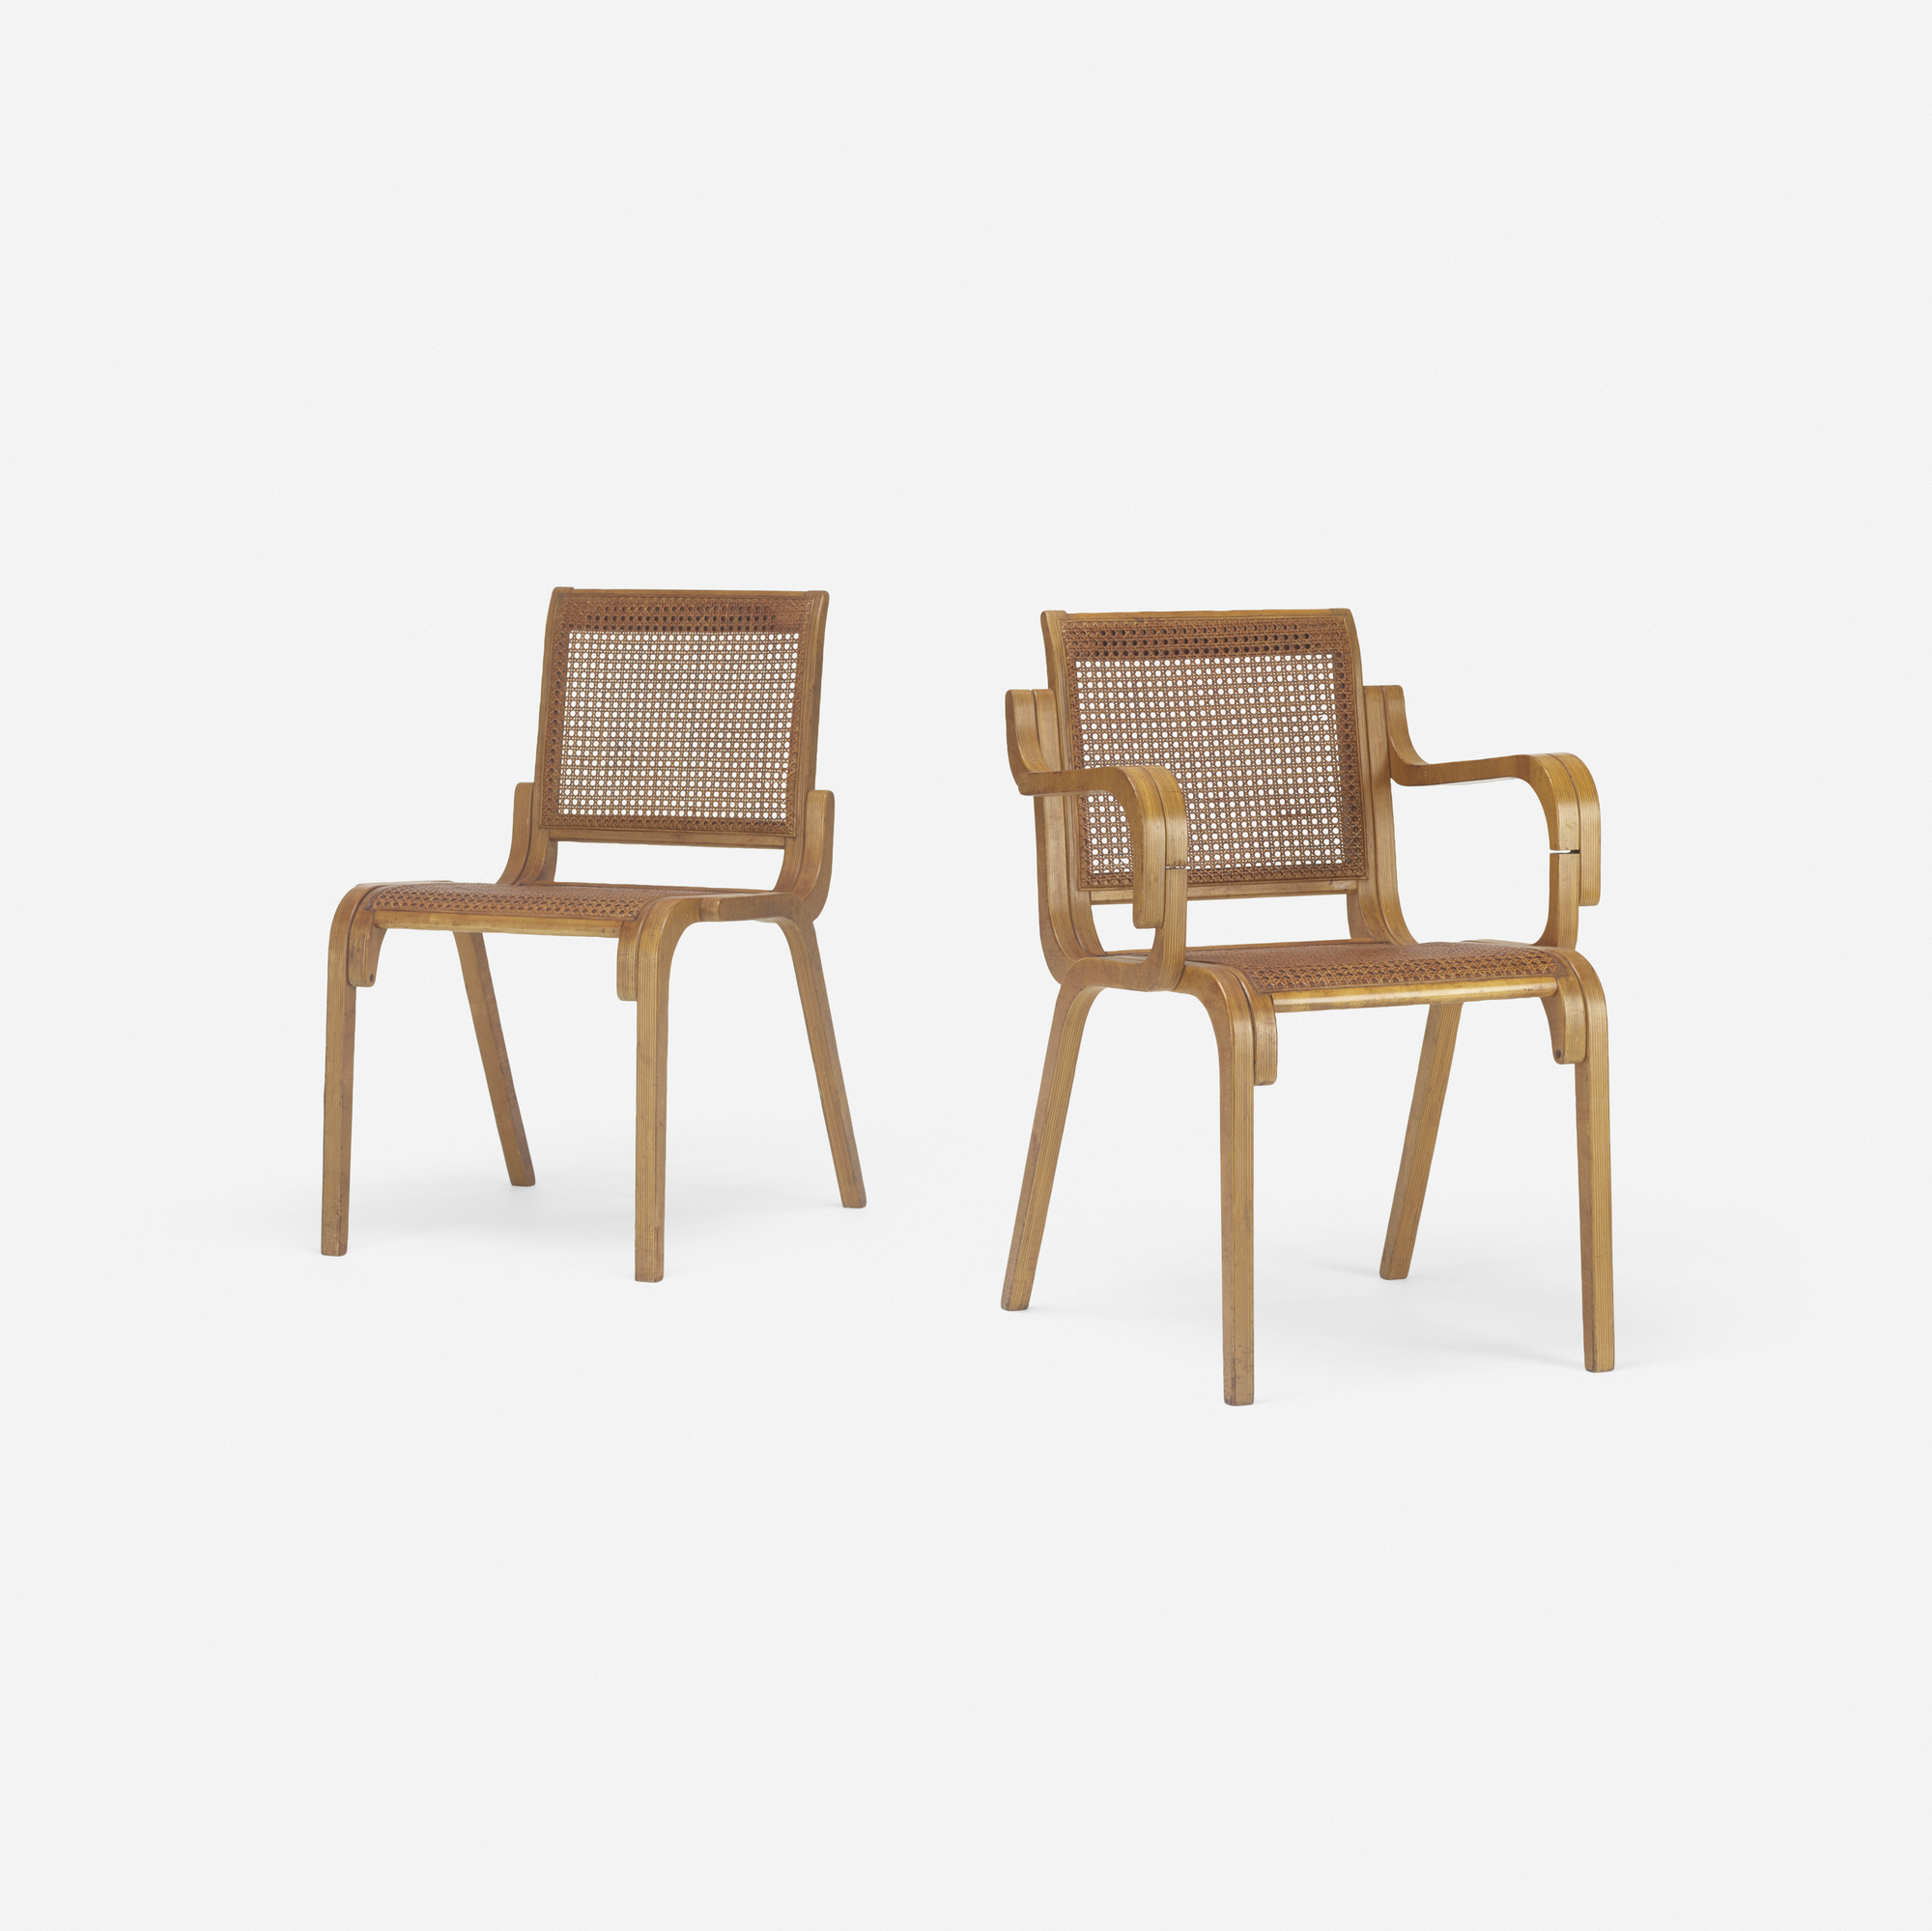 202: Marcel Breuer / rare prototype armchair and side chair (1 of 3)